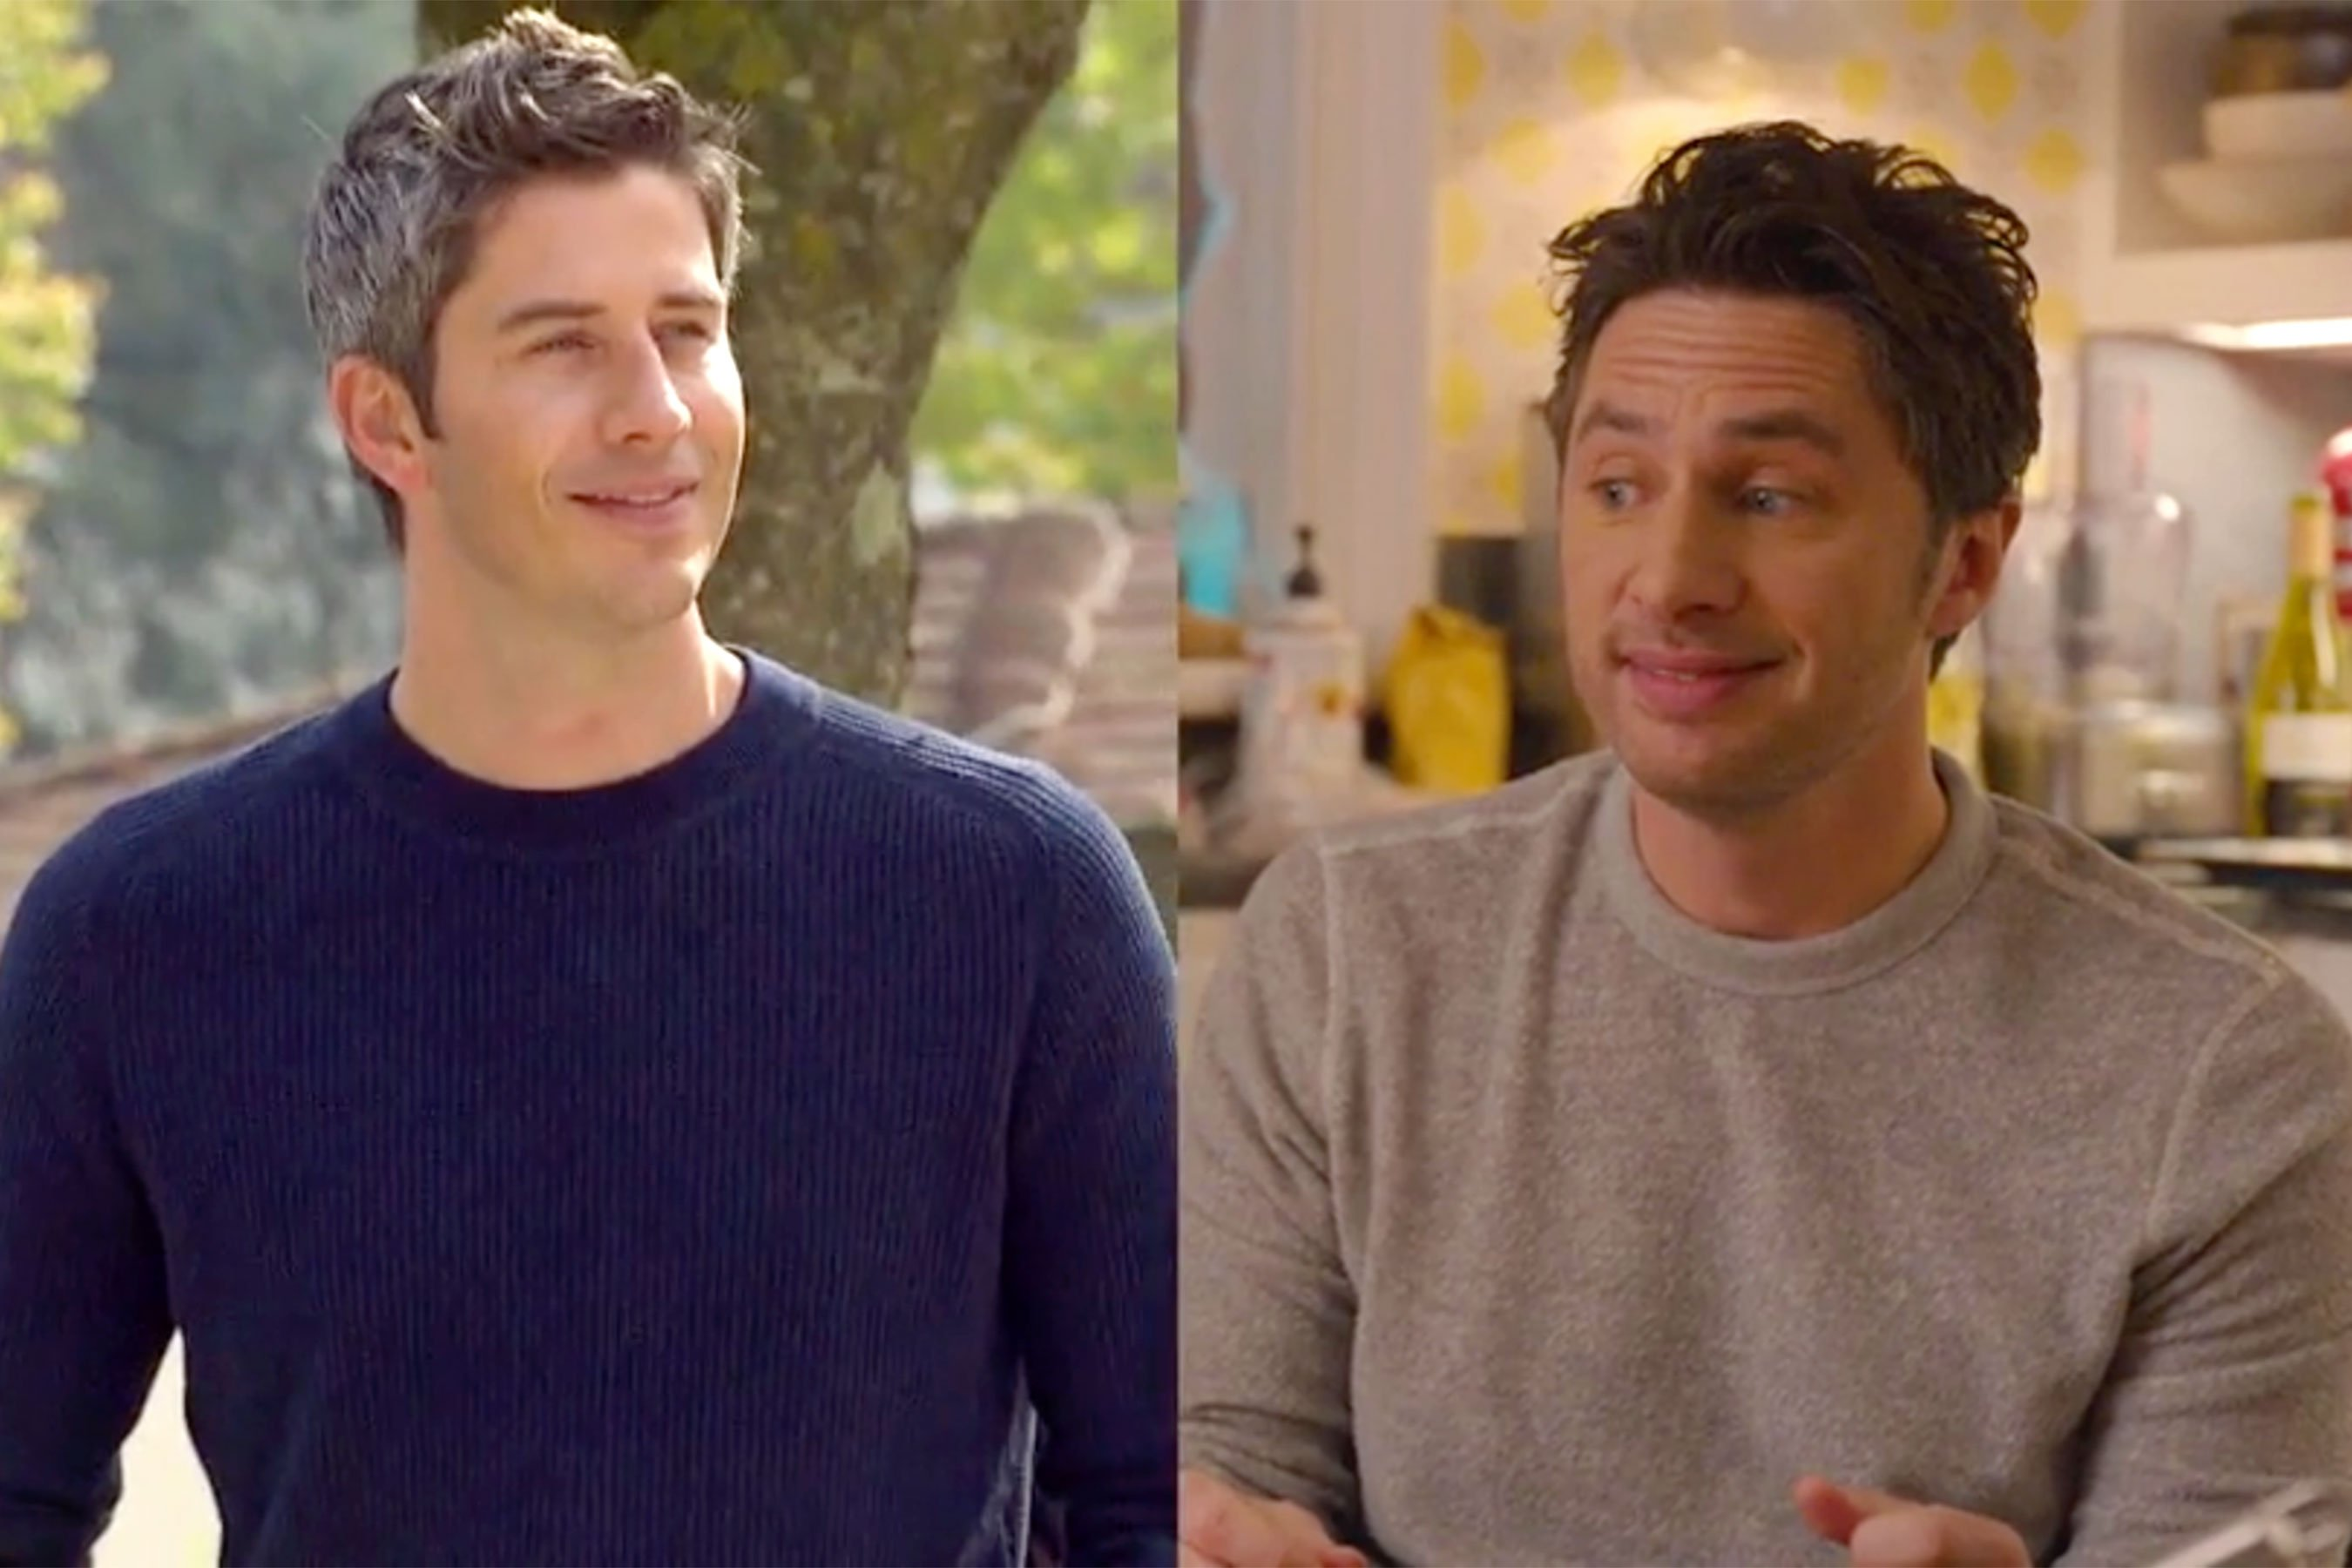 Bachelor look-a-likes! Zach Braff and James Marsden are Bachelor Nation material